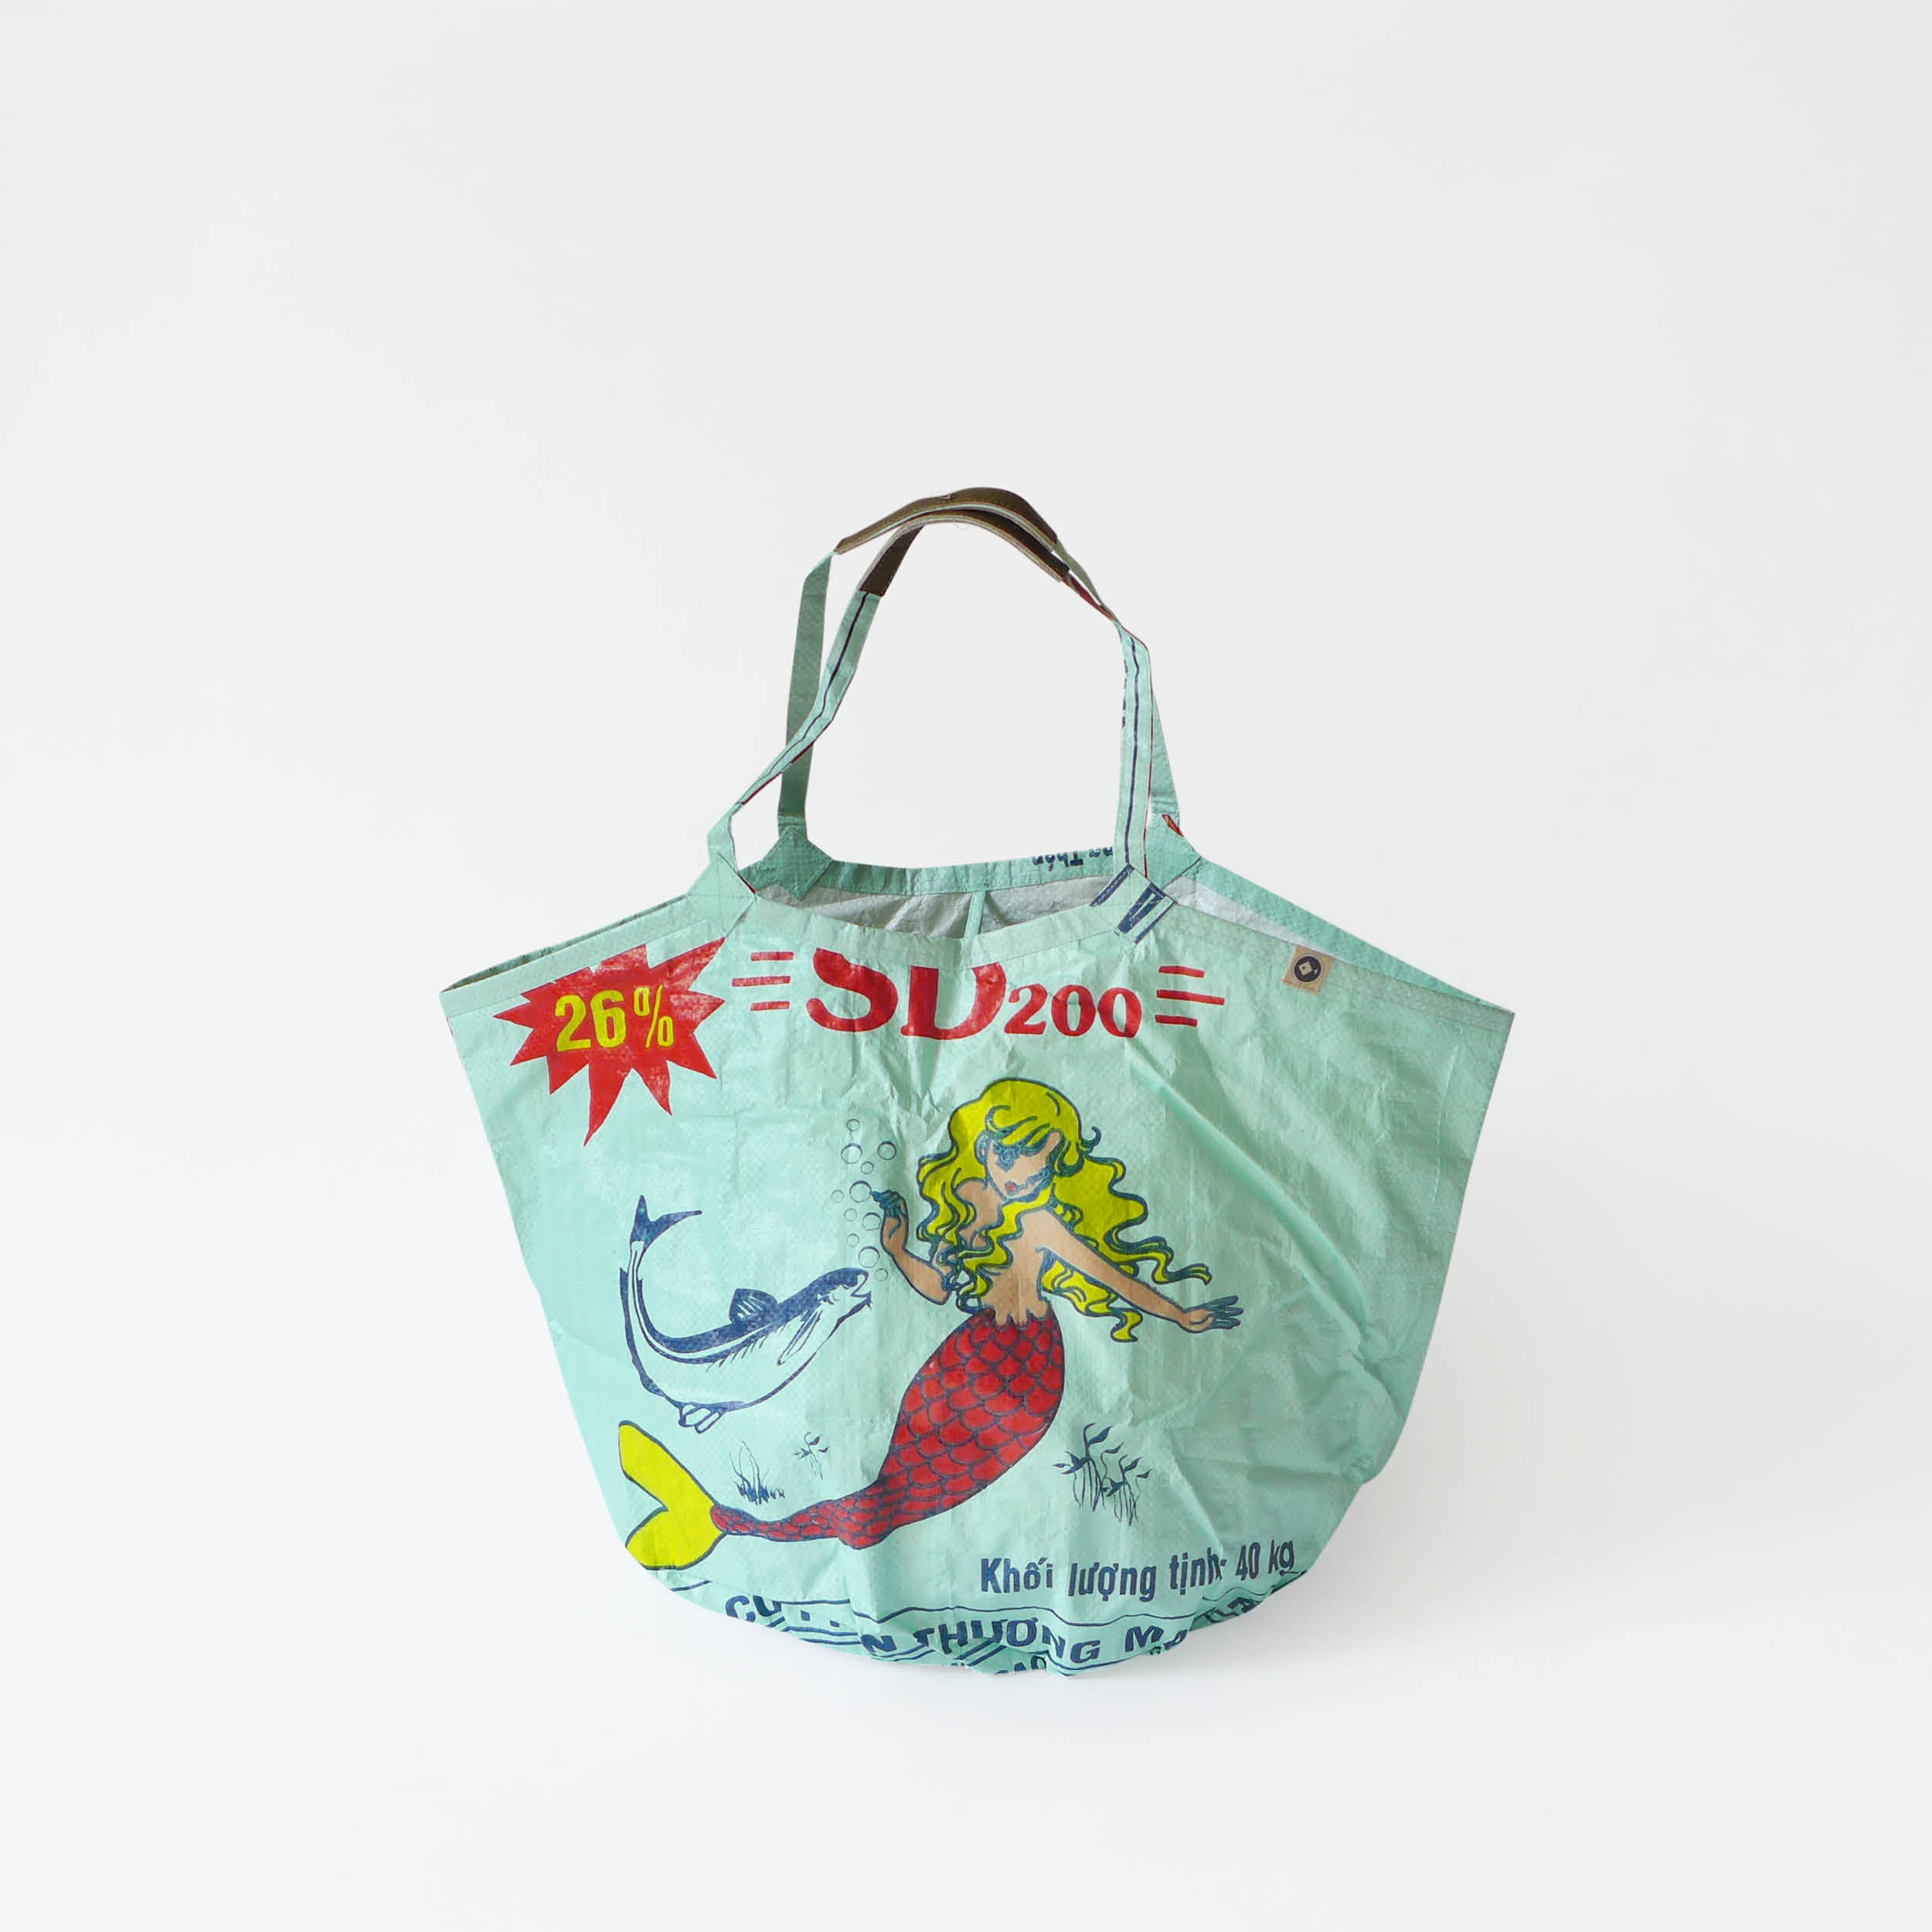 refished-tasche-soulmate-tourquoise.jpg